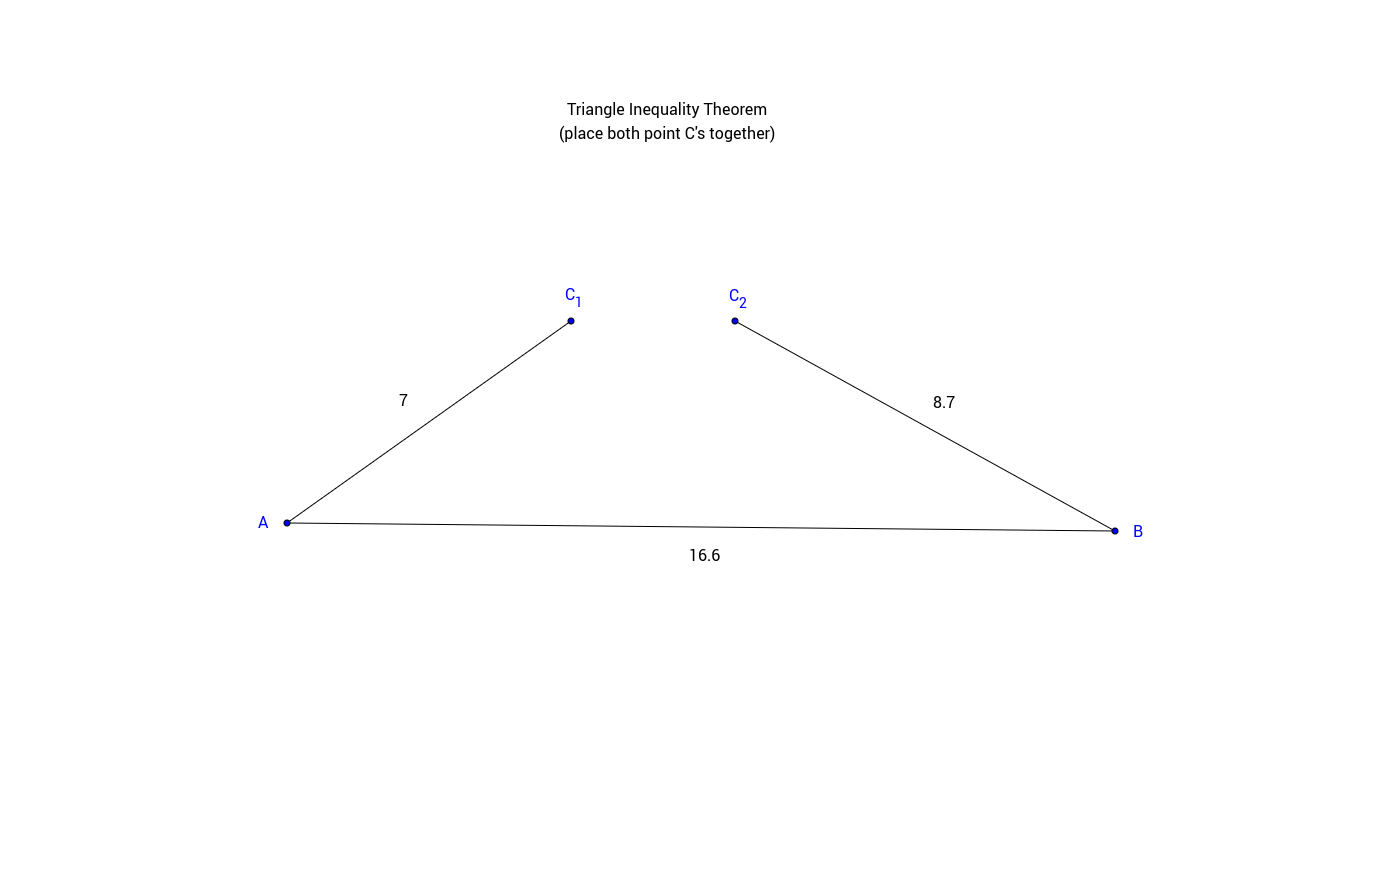 worksheet Triangle Inequalities Worksheet triangle inequality theorem algebraic expressions in words inequalities worksheet fraction to decimal percent material zc9662uy thumb worksheethtml